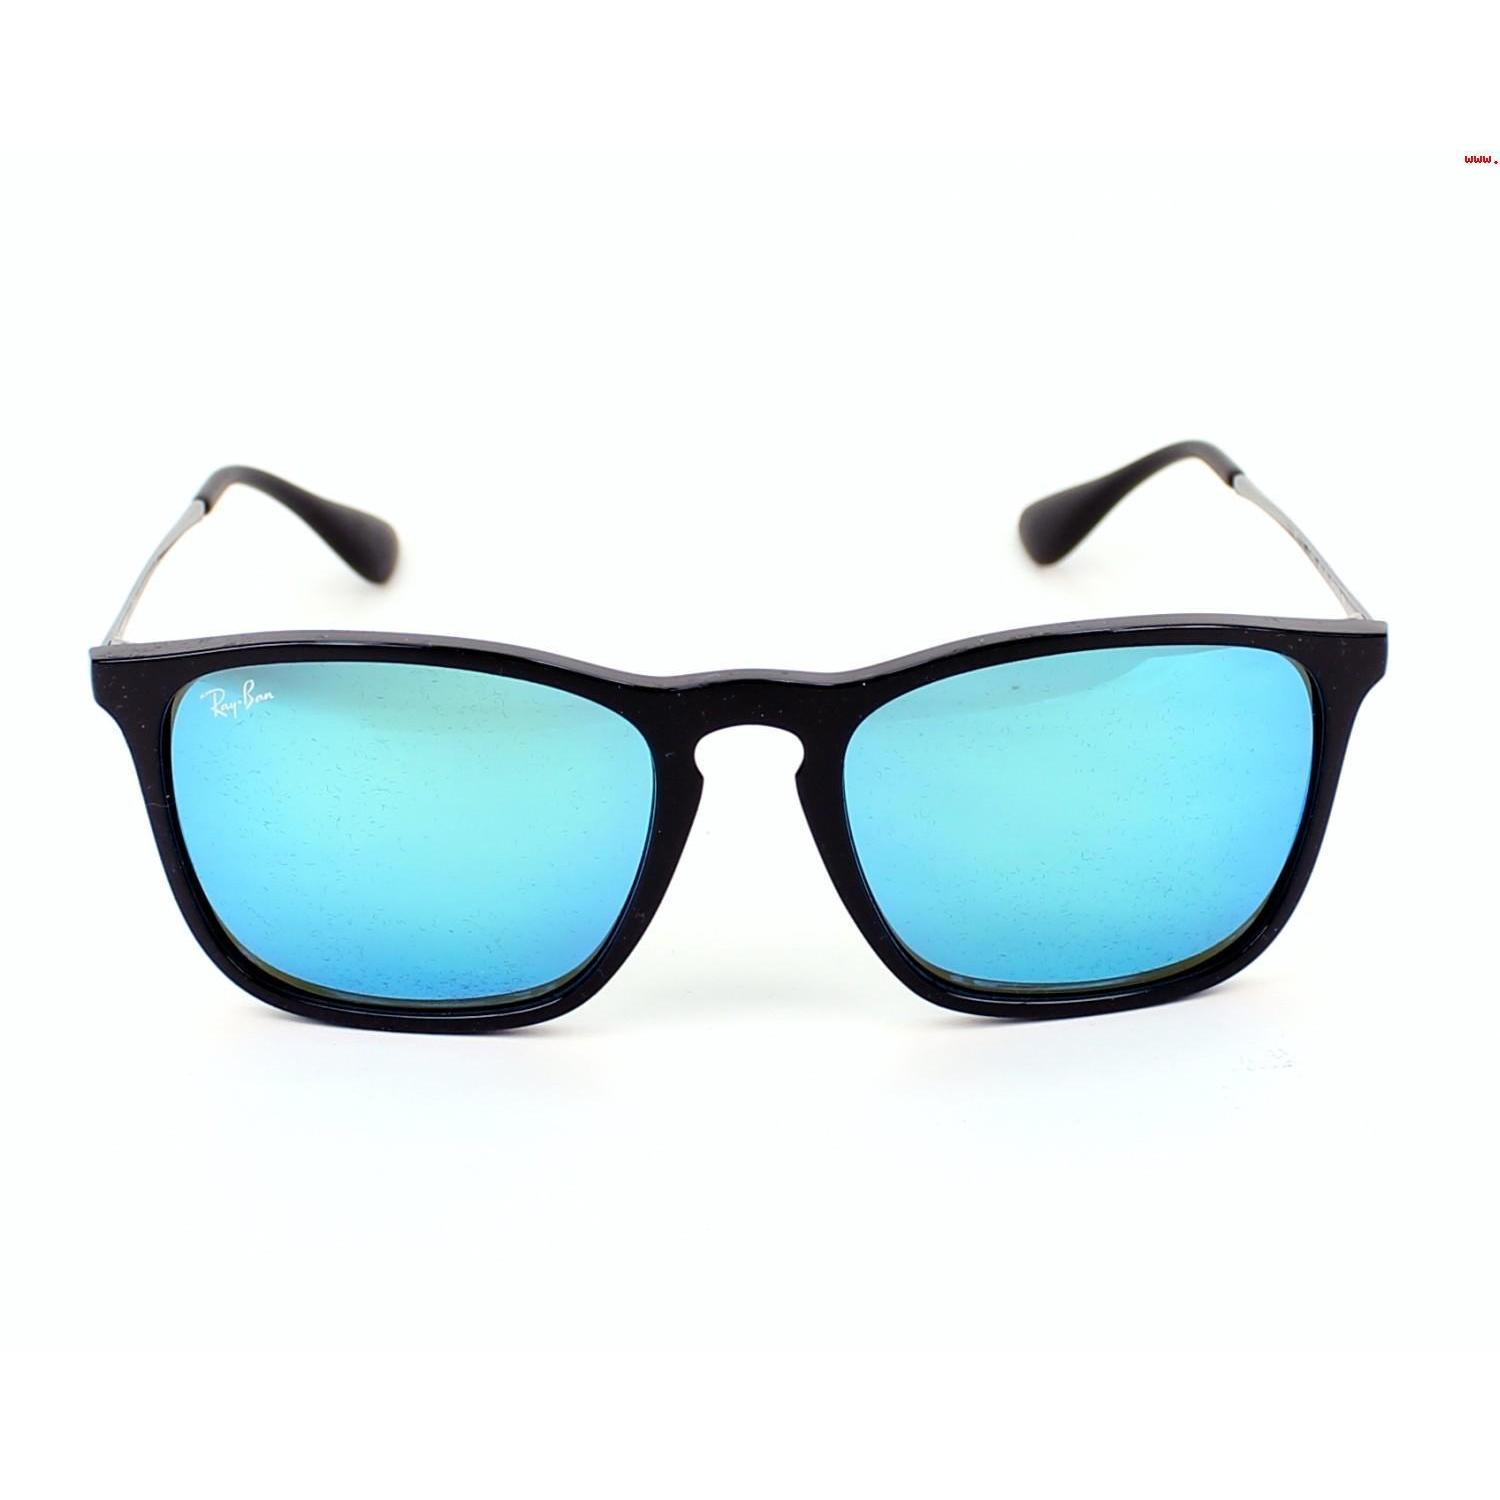 6fa7dad800 Shop Ray-Ban Chris RB4187 601 55 Men s Black Gunmetal Frame Blue Mirror  Lens Sunglasses - Free Shipping Today - Overstock - 15079548